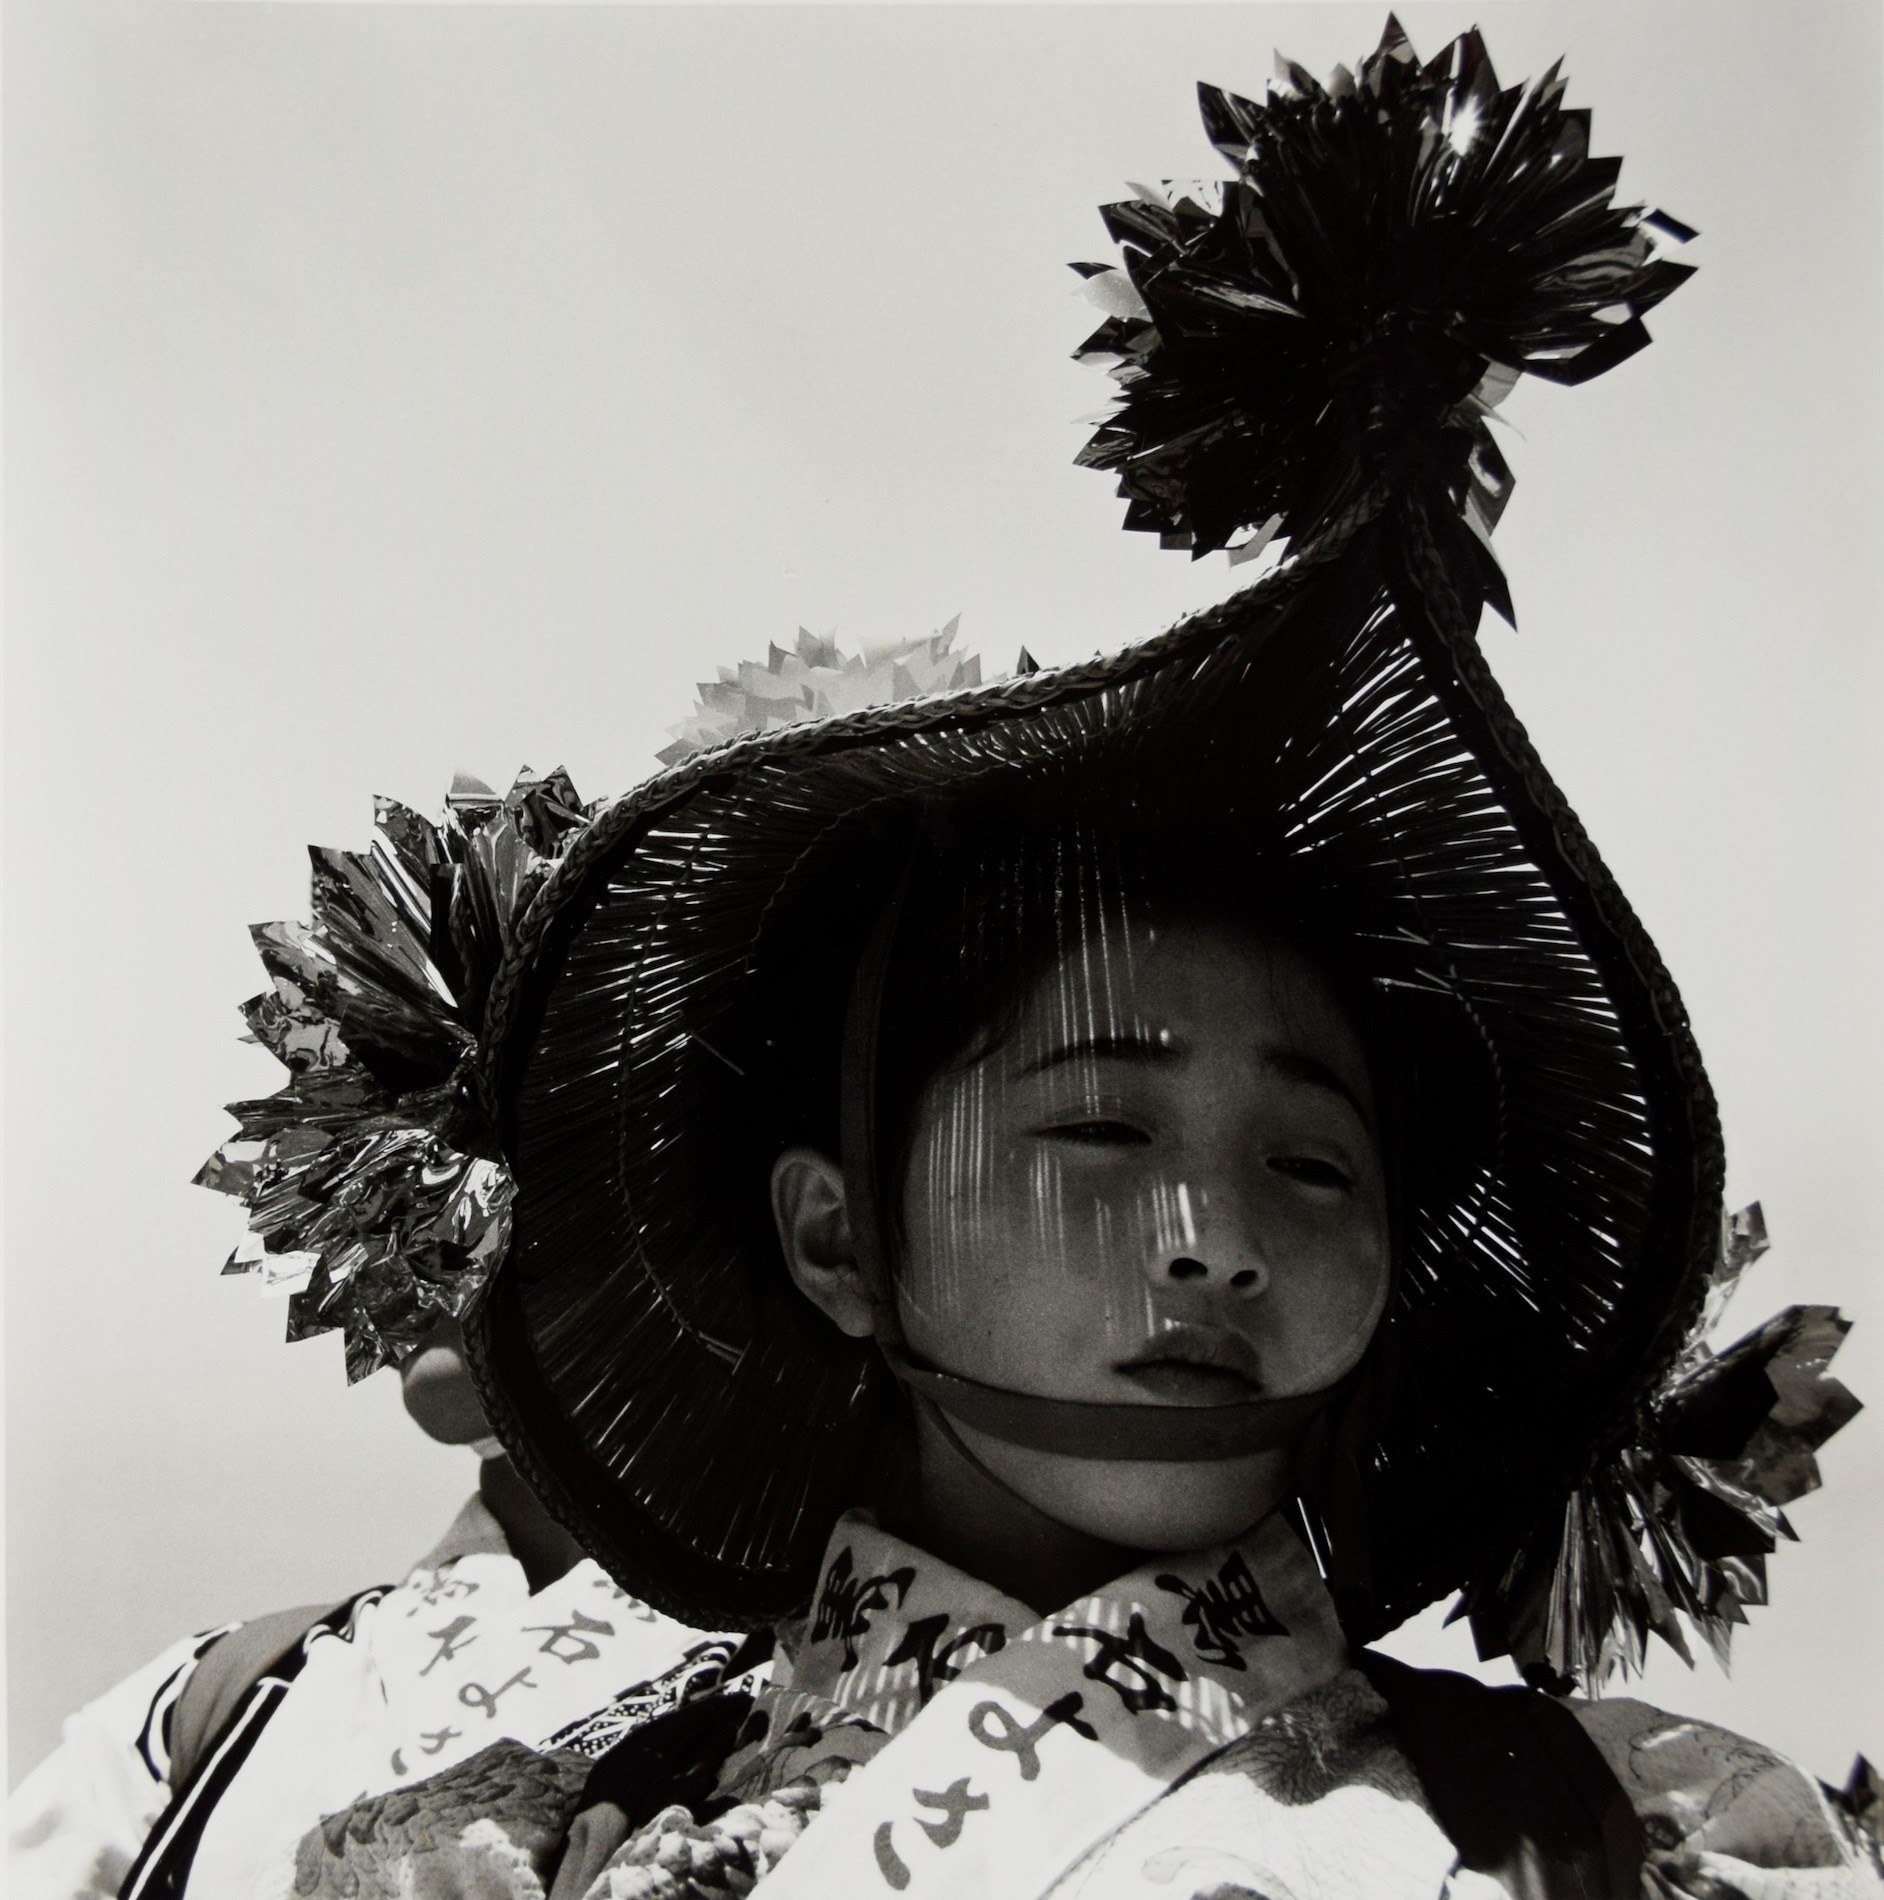 A young girl in traditional regional Japanese clothing, with a shadow on her face from her hat